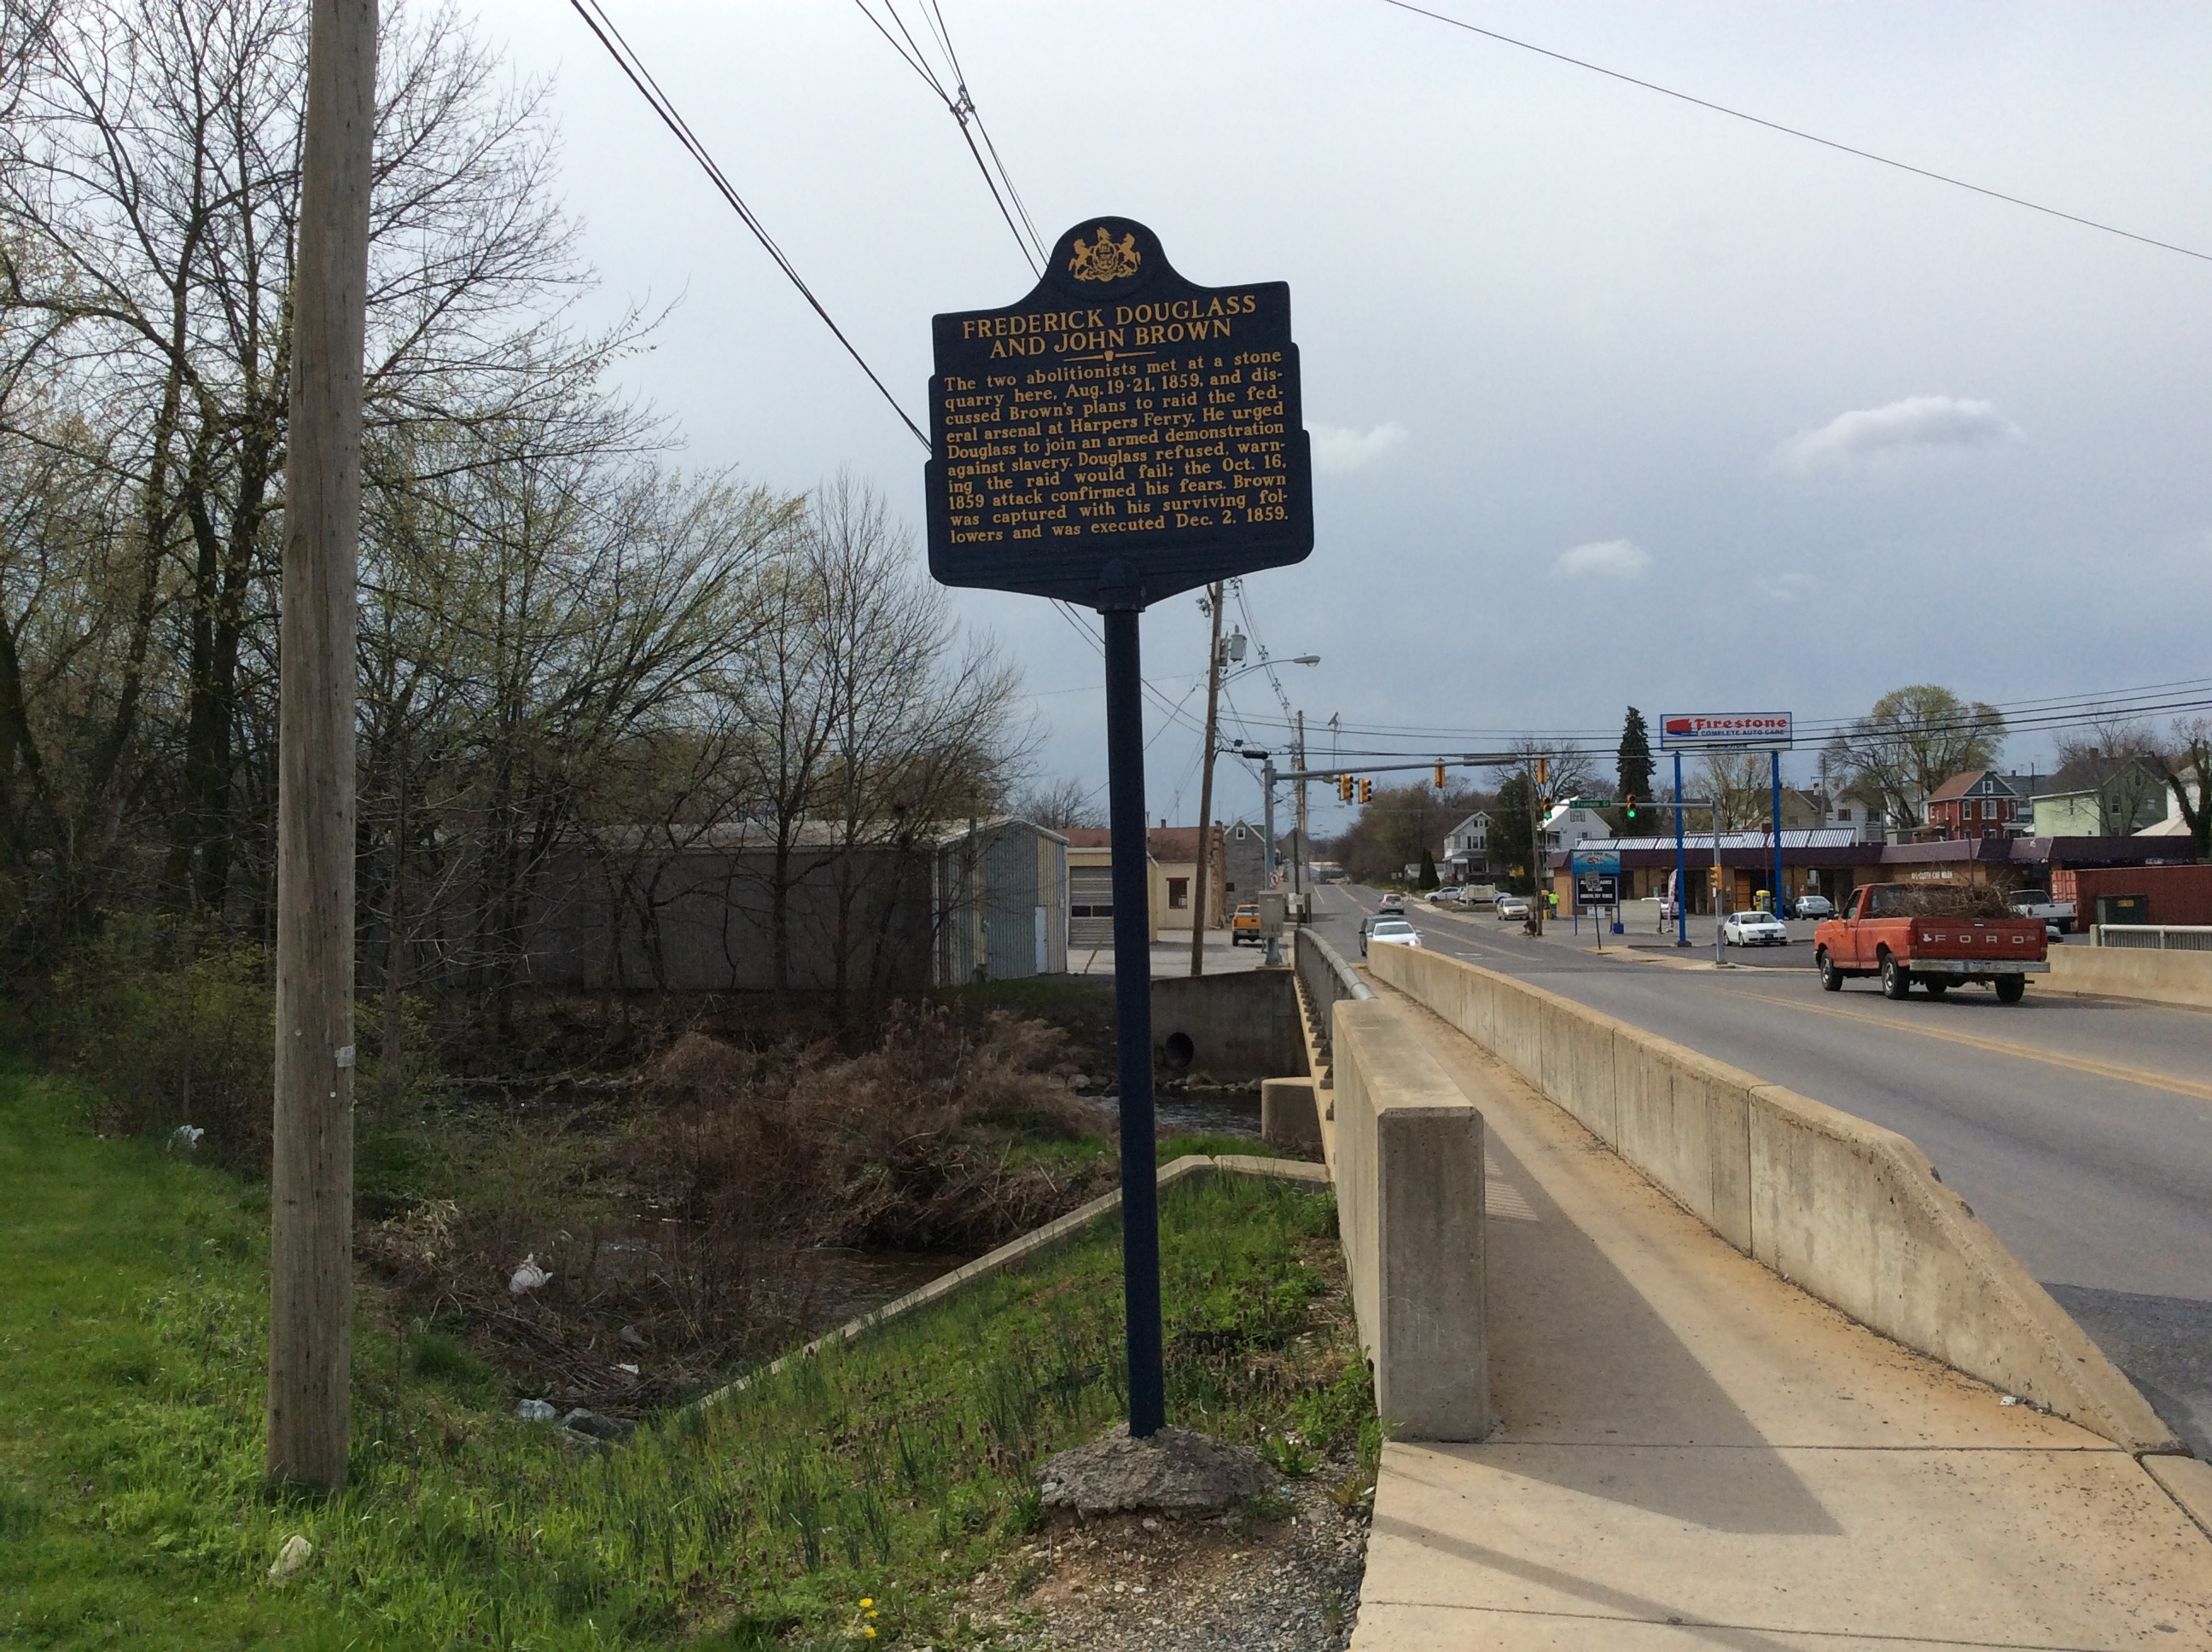 Quarry site historical marker where Douglass and Brown met, Chambersburg, 2016 Amy Cools